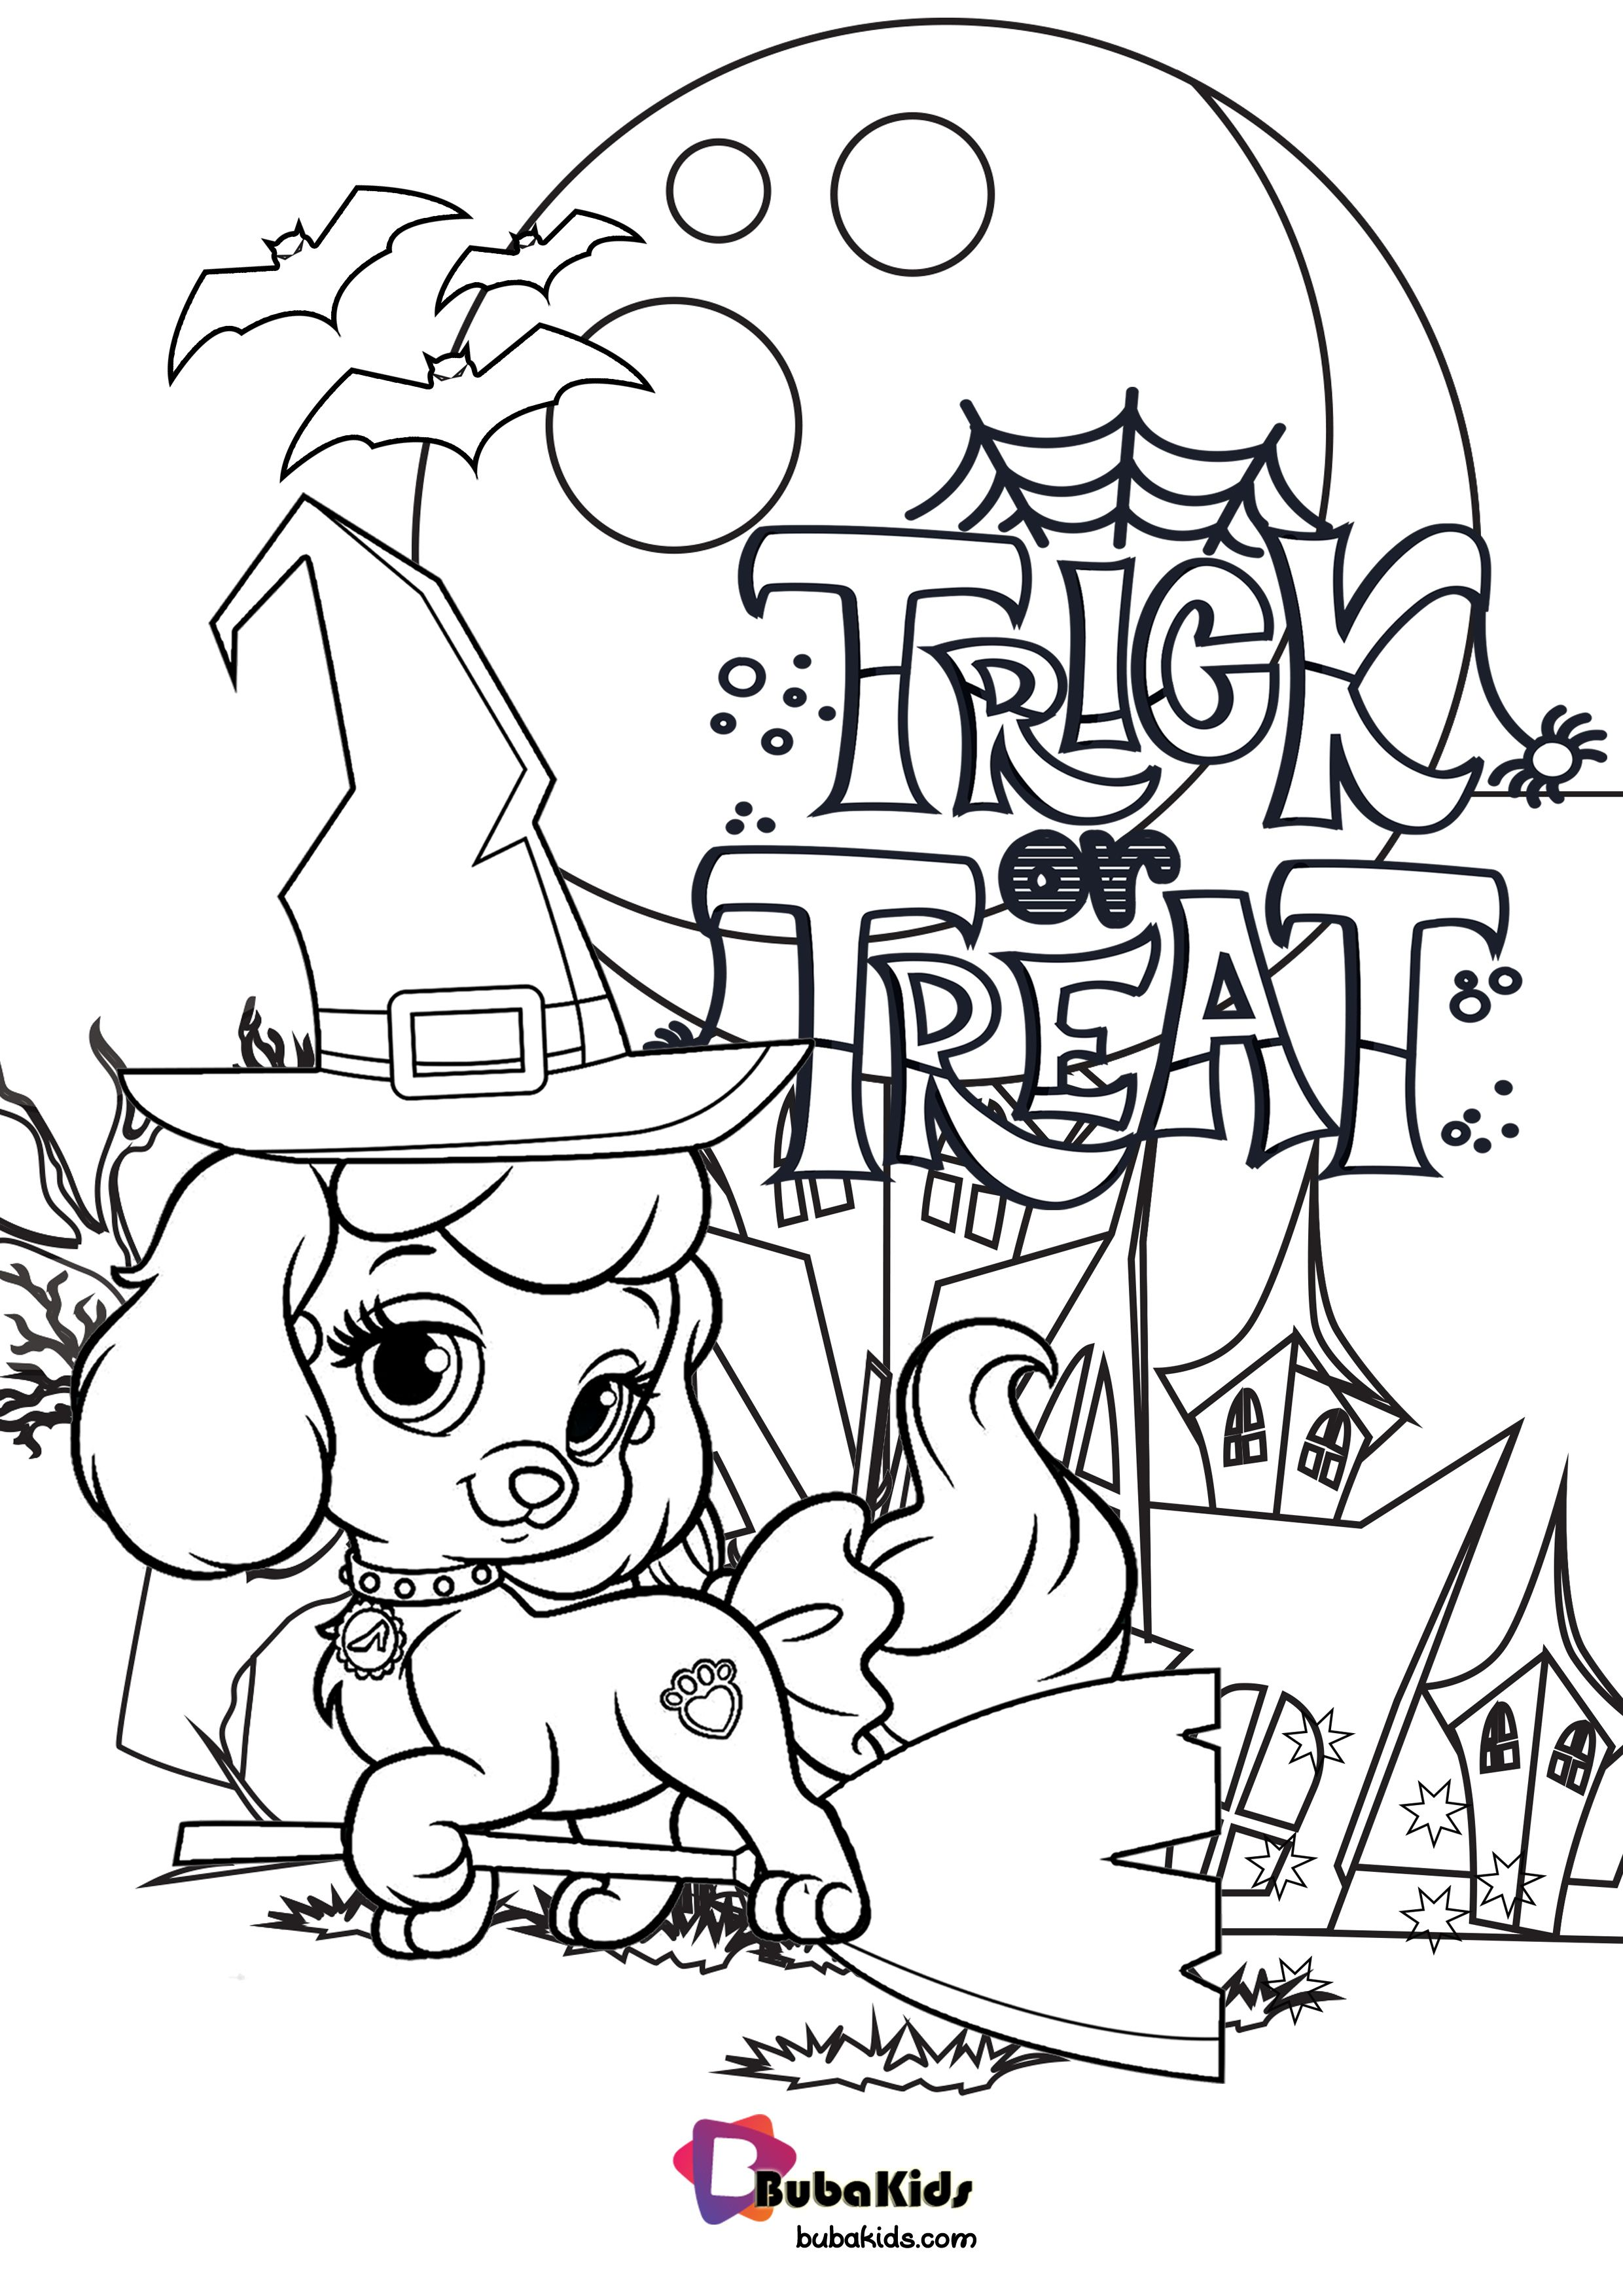 Cute Dog Happy Halloween Trick Or Treat Coloring Page ...